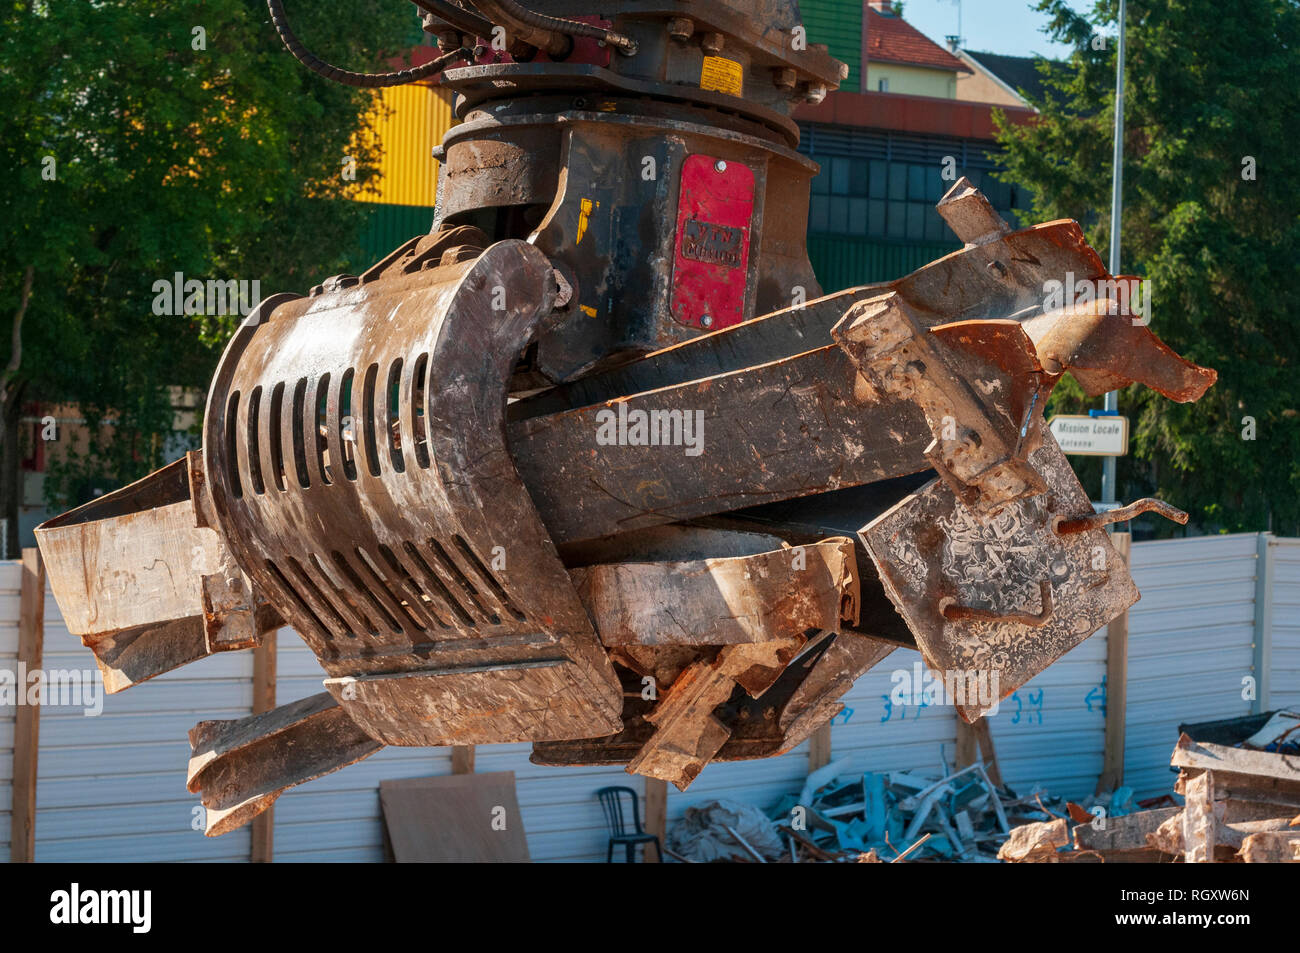 Demolition site. Sorting Grabs used to sort waste. Here recovery of iron girder. - Stock Image